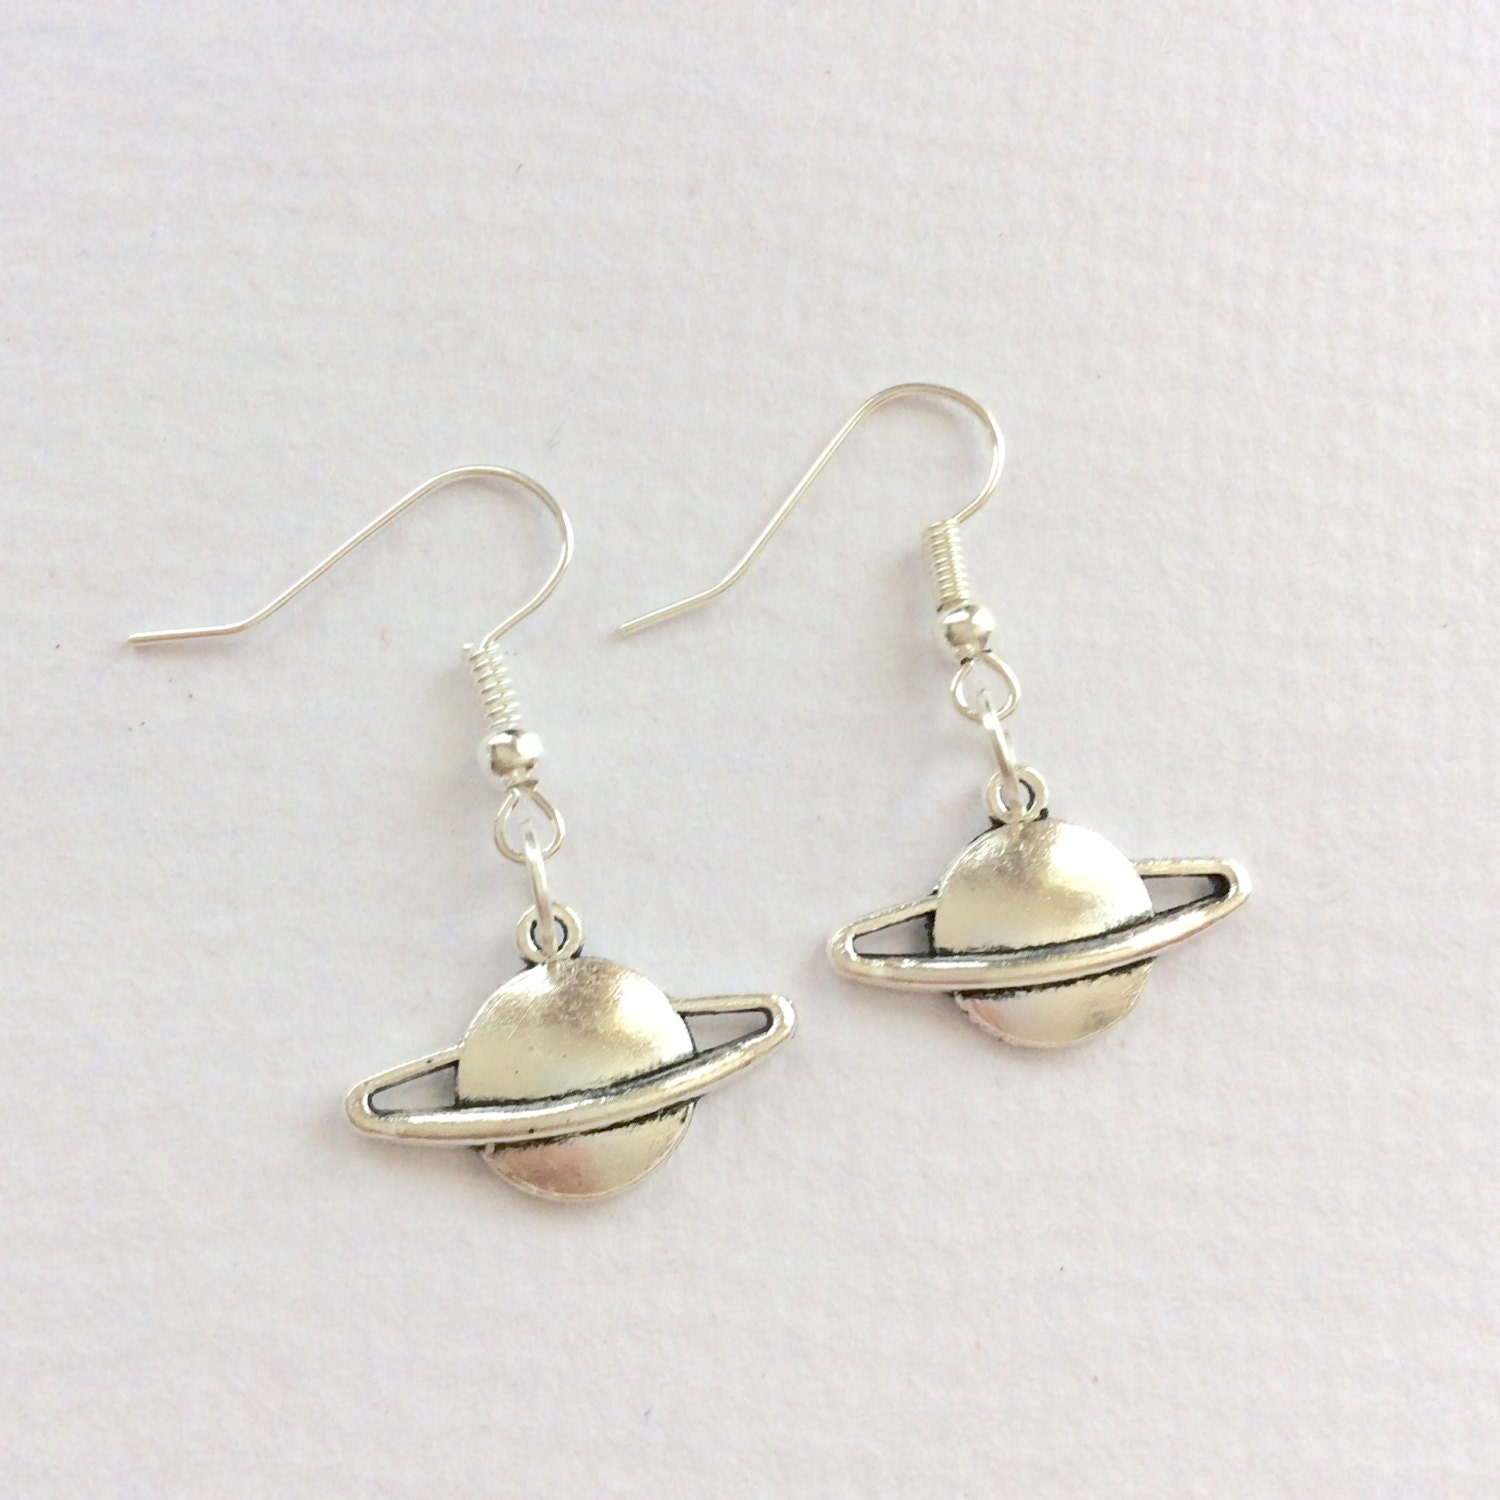 planet saturn earring - photo #11